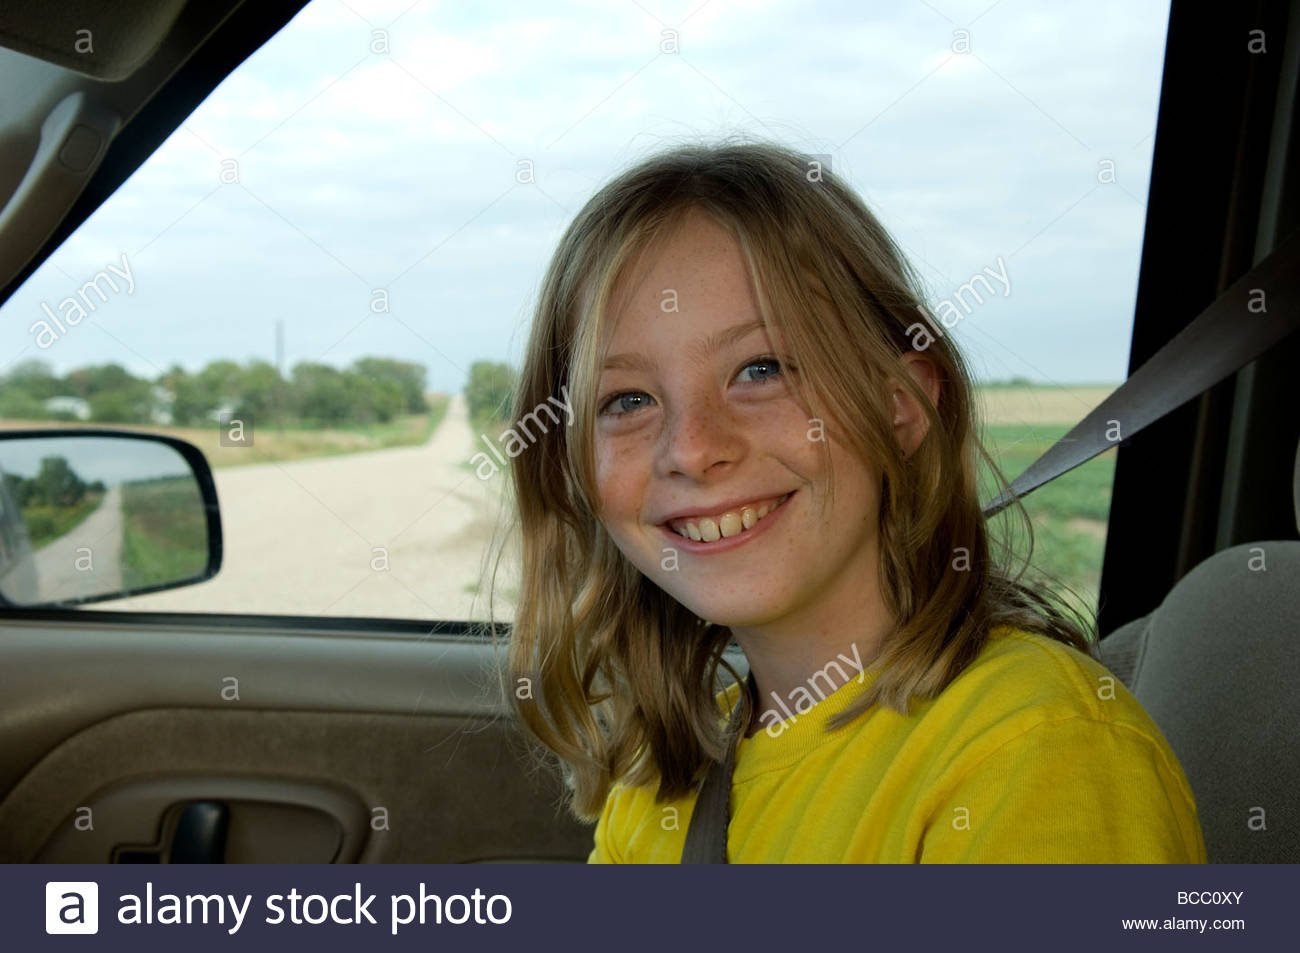 A 10-year-old girl goes for a car ride near Bennet Stock Photo ...